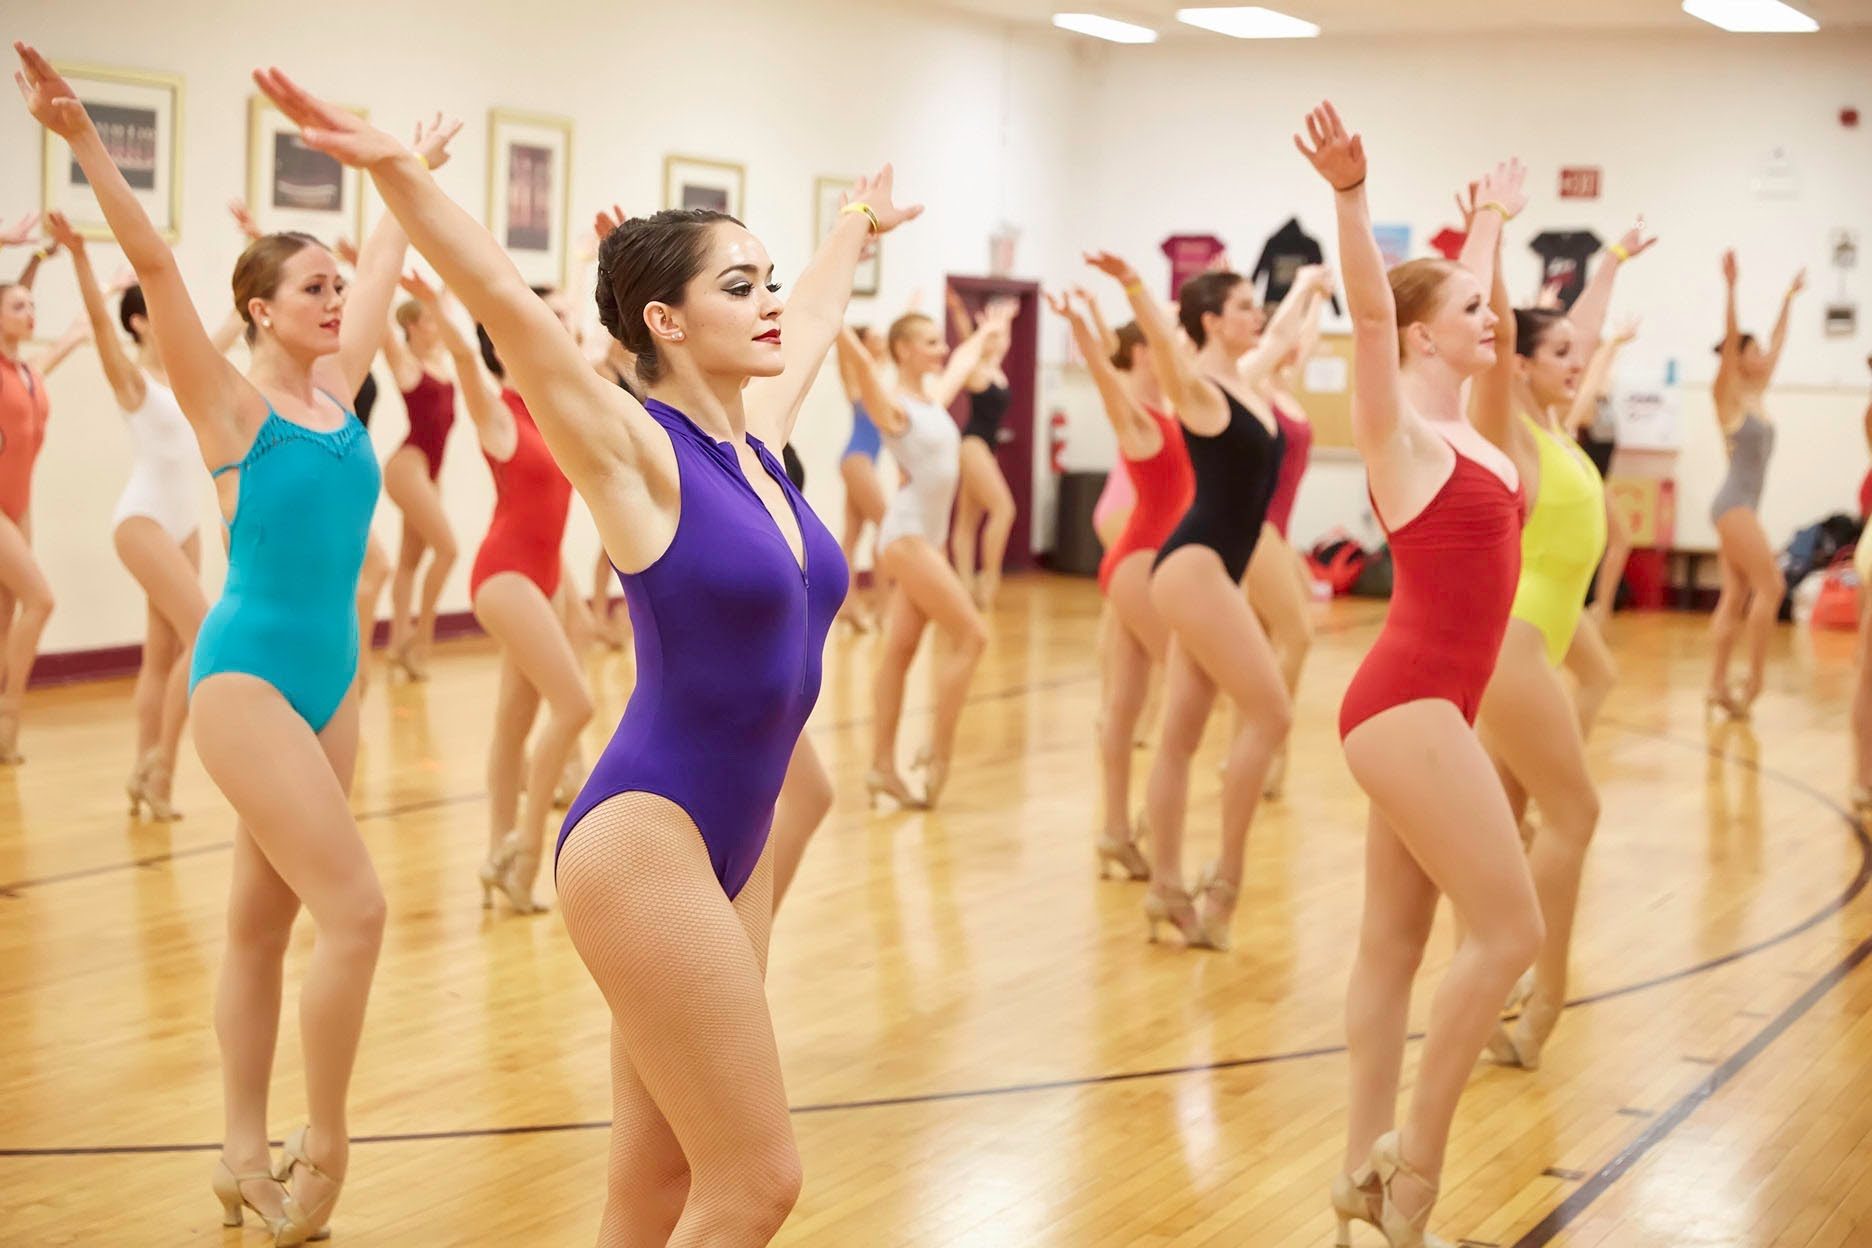 Sometimes auditions allow colorful clothing, like The Rockettes!